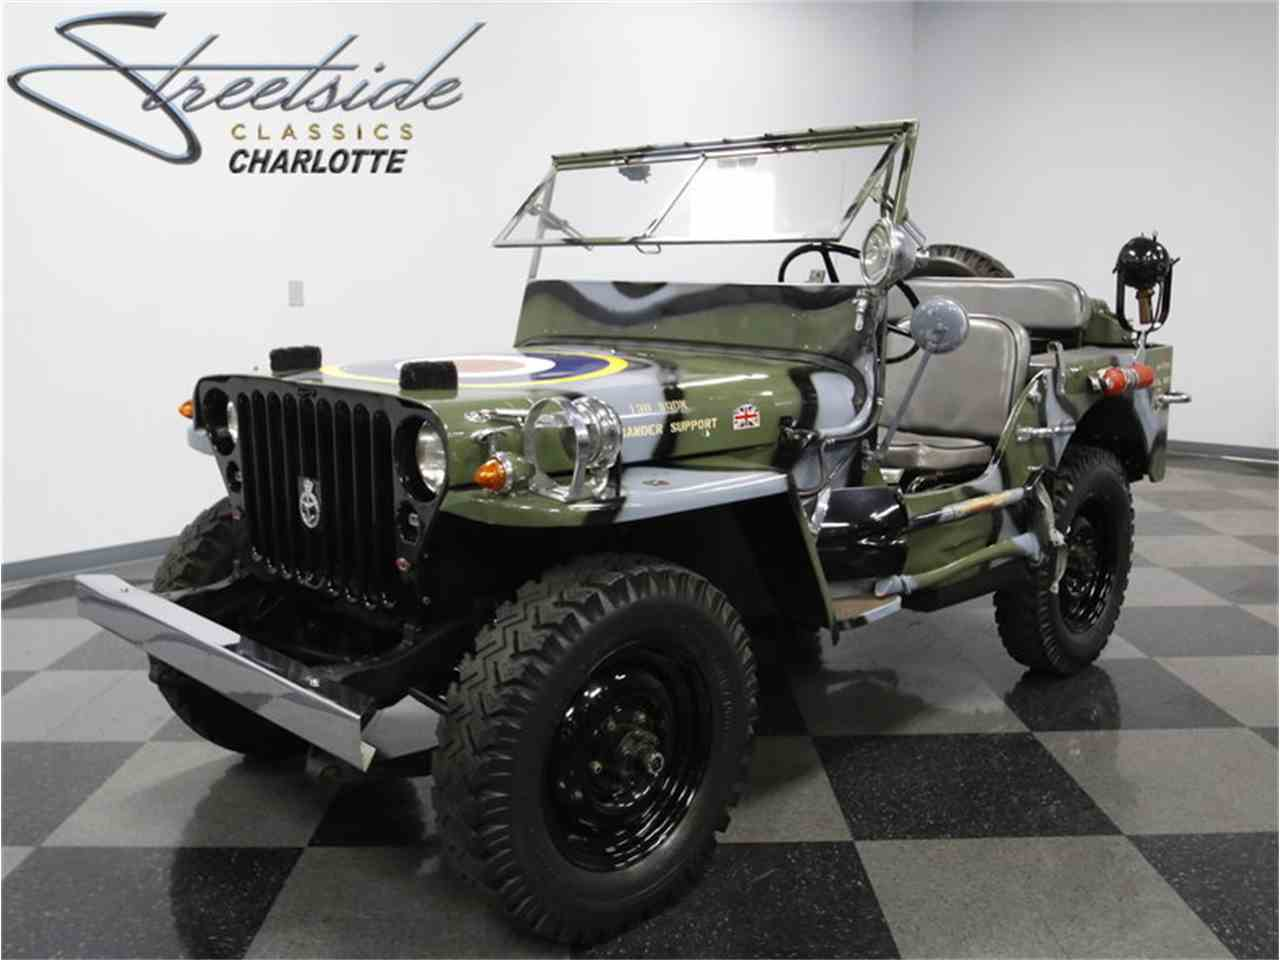 Military Jeeps For Sale >> 1945 Willys Mb Military Jeep For Sale Classiccars Com Cc 990465